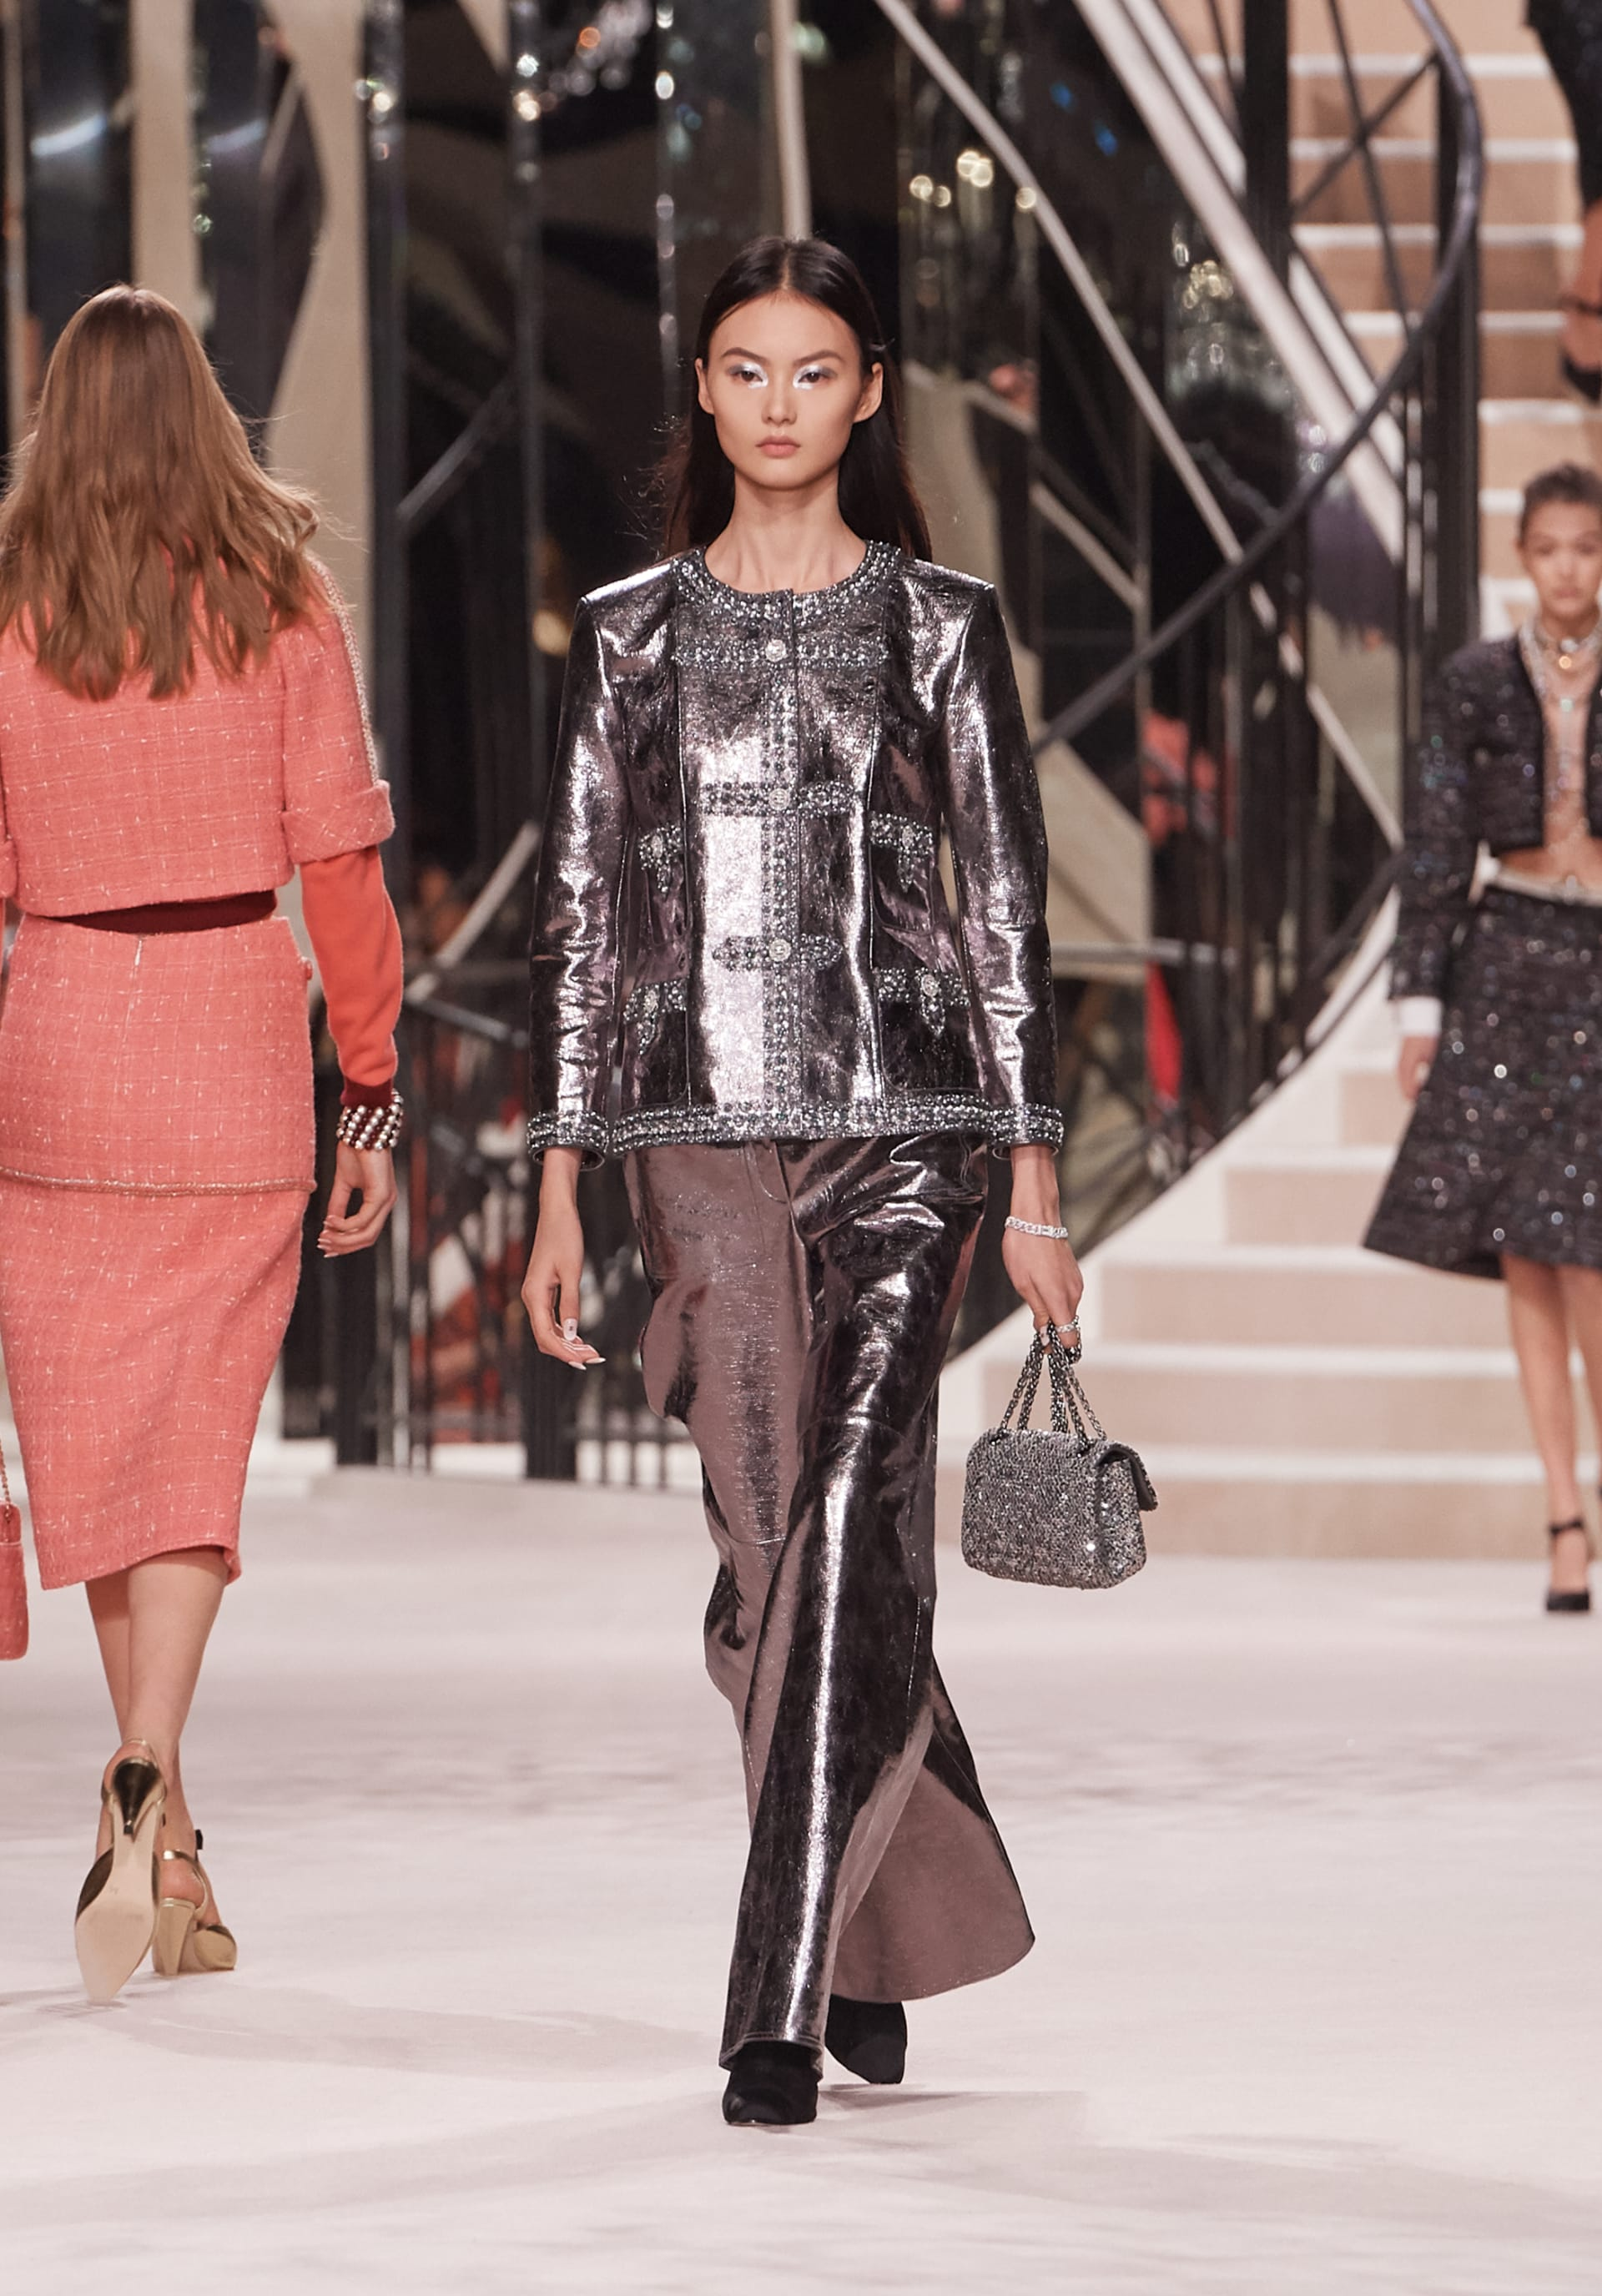 View 1 - Look 38 - Métiers d'Art 2019/20 - see full sized version